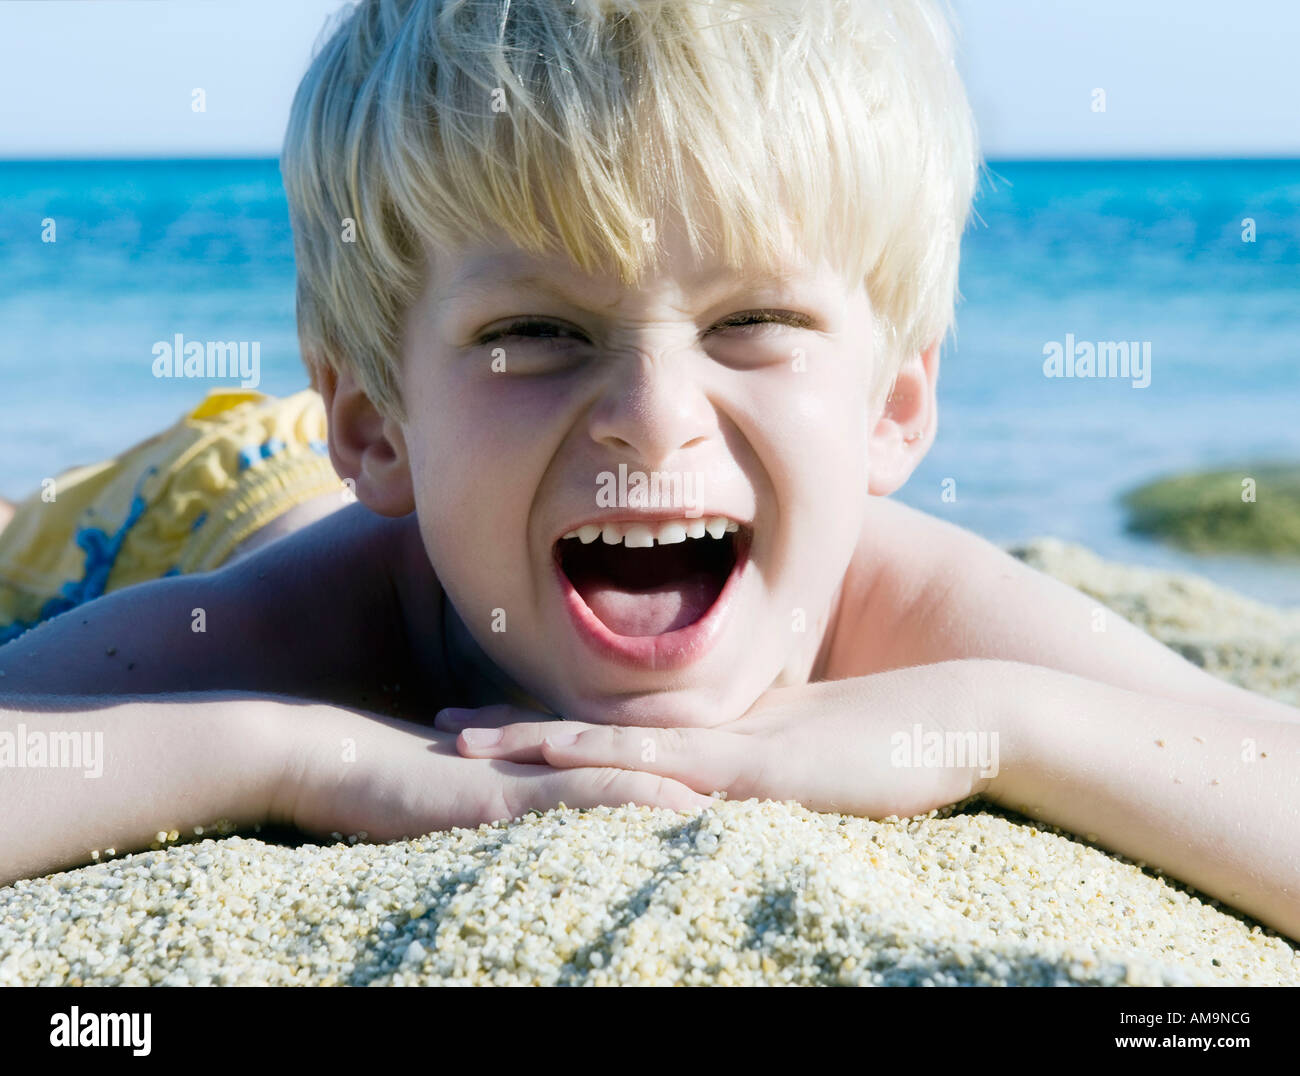 Young boy lying in the sand at the beach yelling. Stock Photo